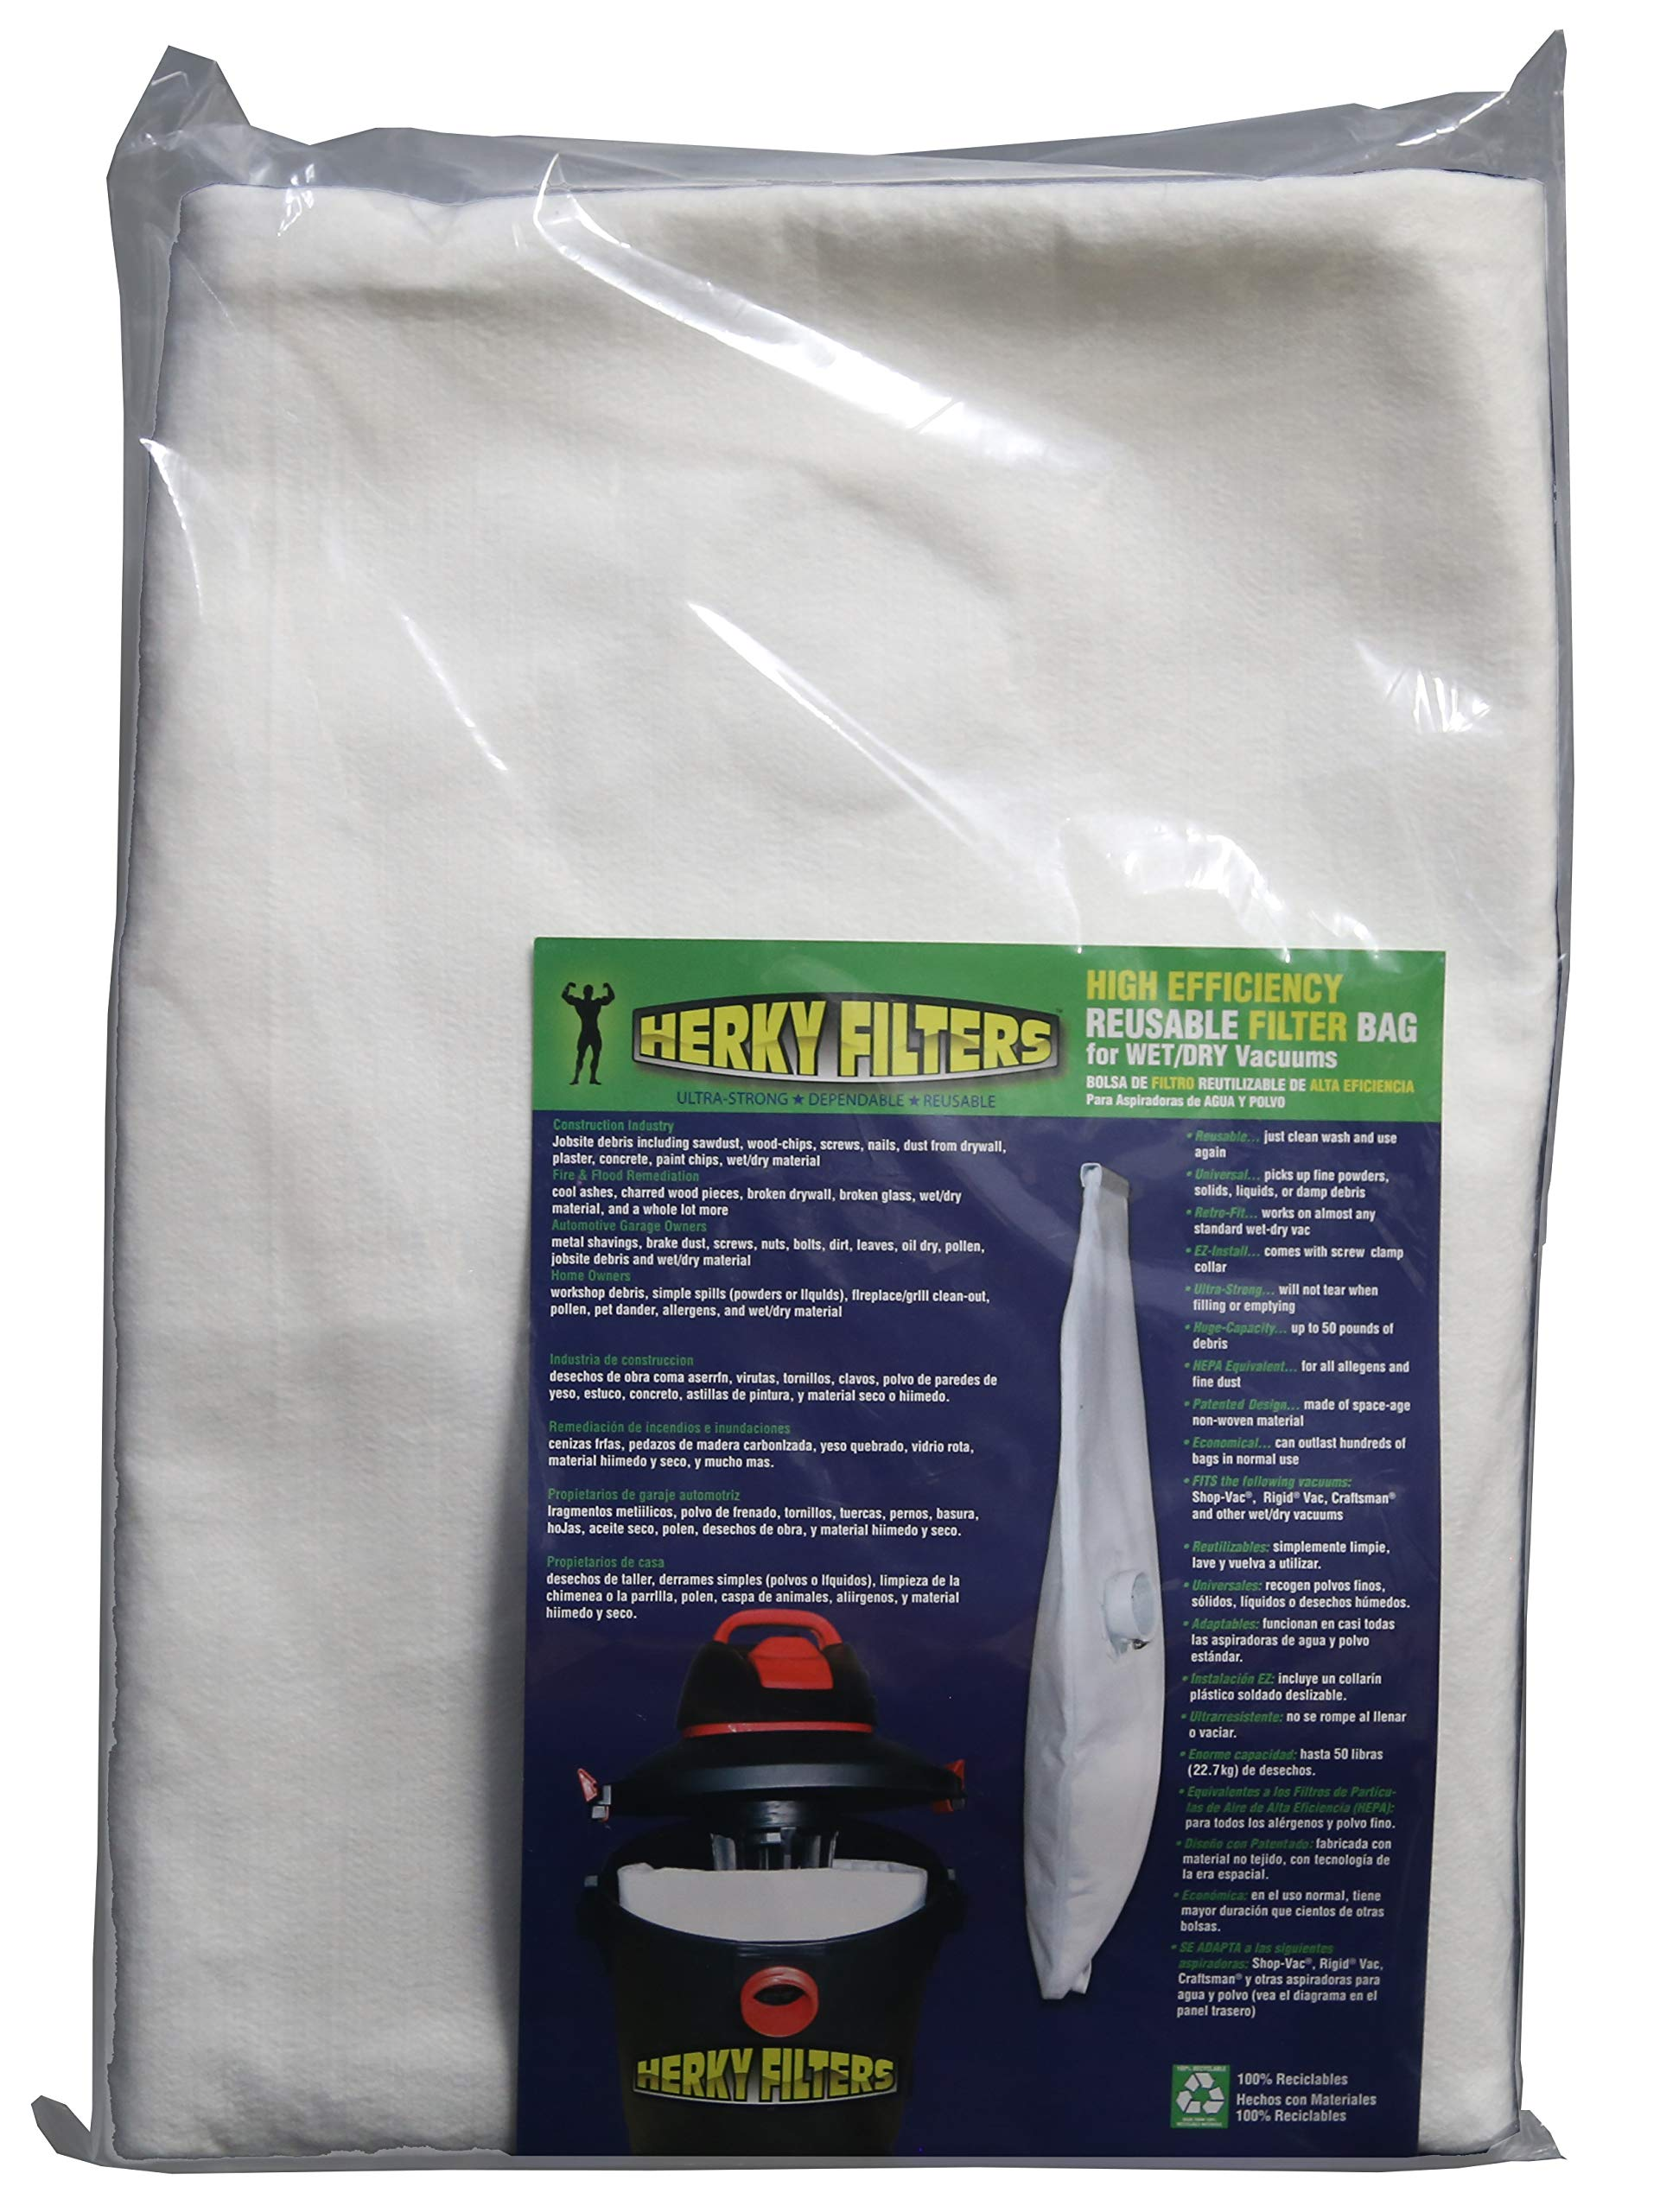 Large Reusable Filter Bag for Wet/dry Vacuums by Herky Filters